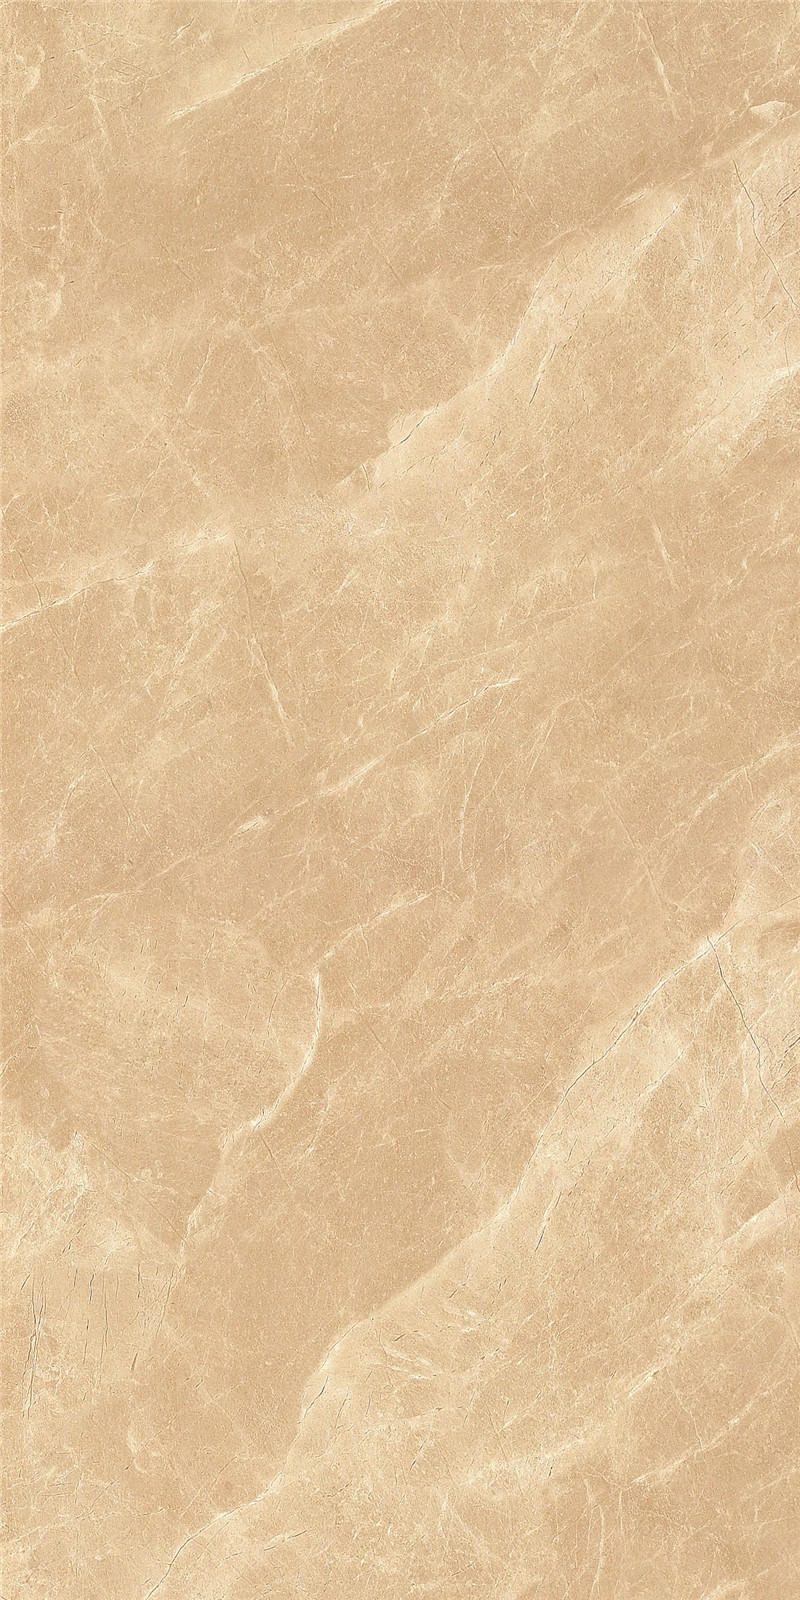 cheap tiles online marble vitrified grey LONGFAVOR